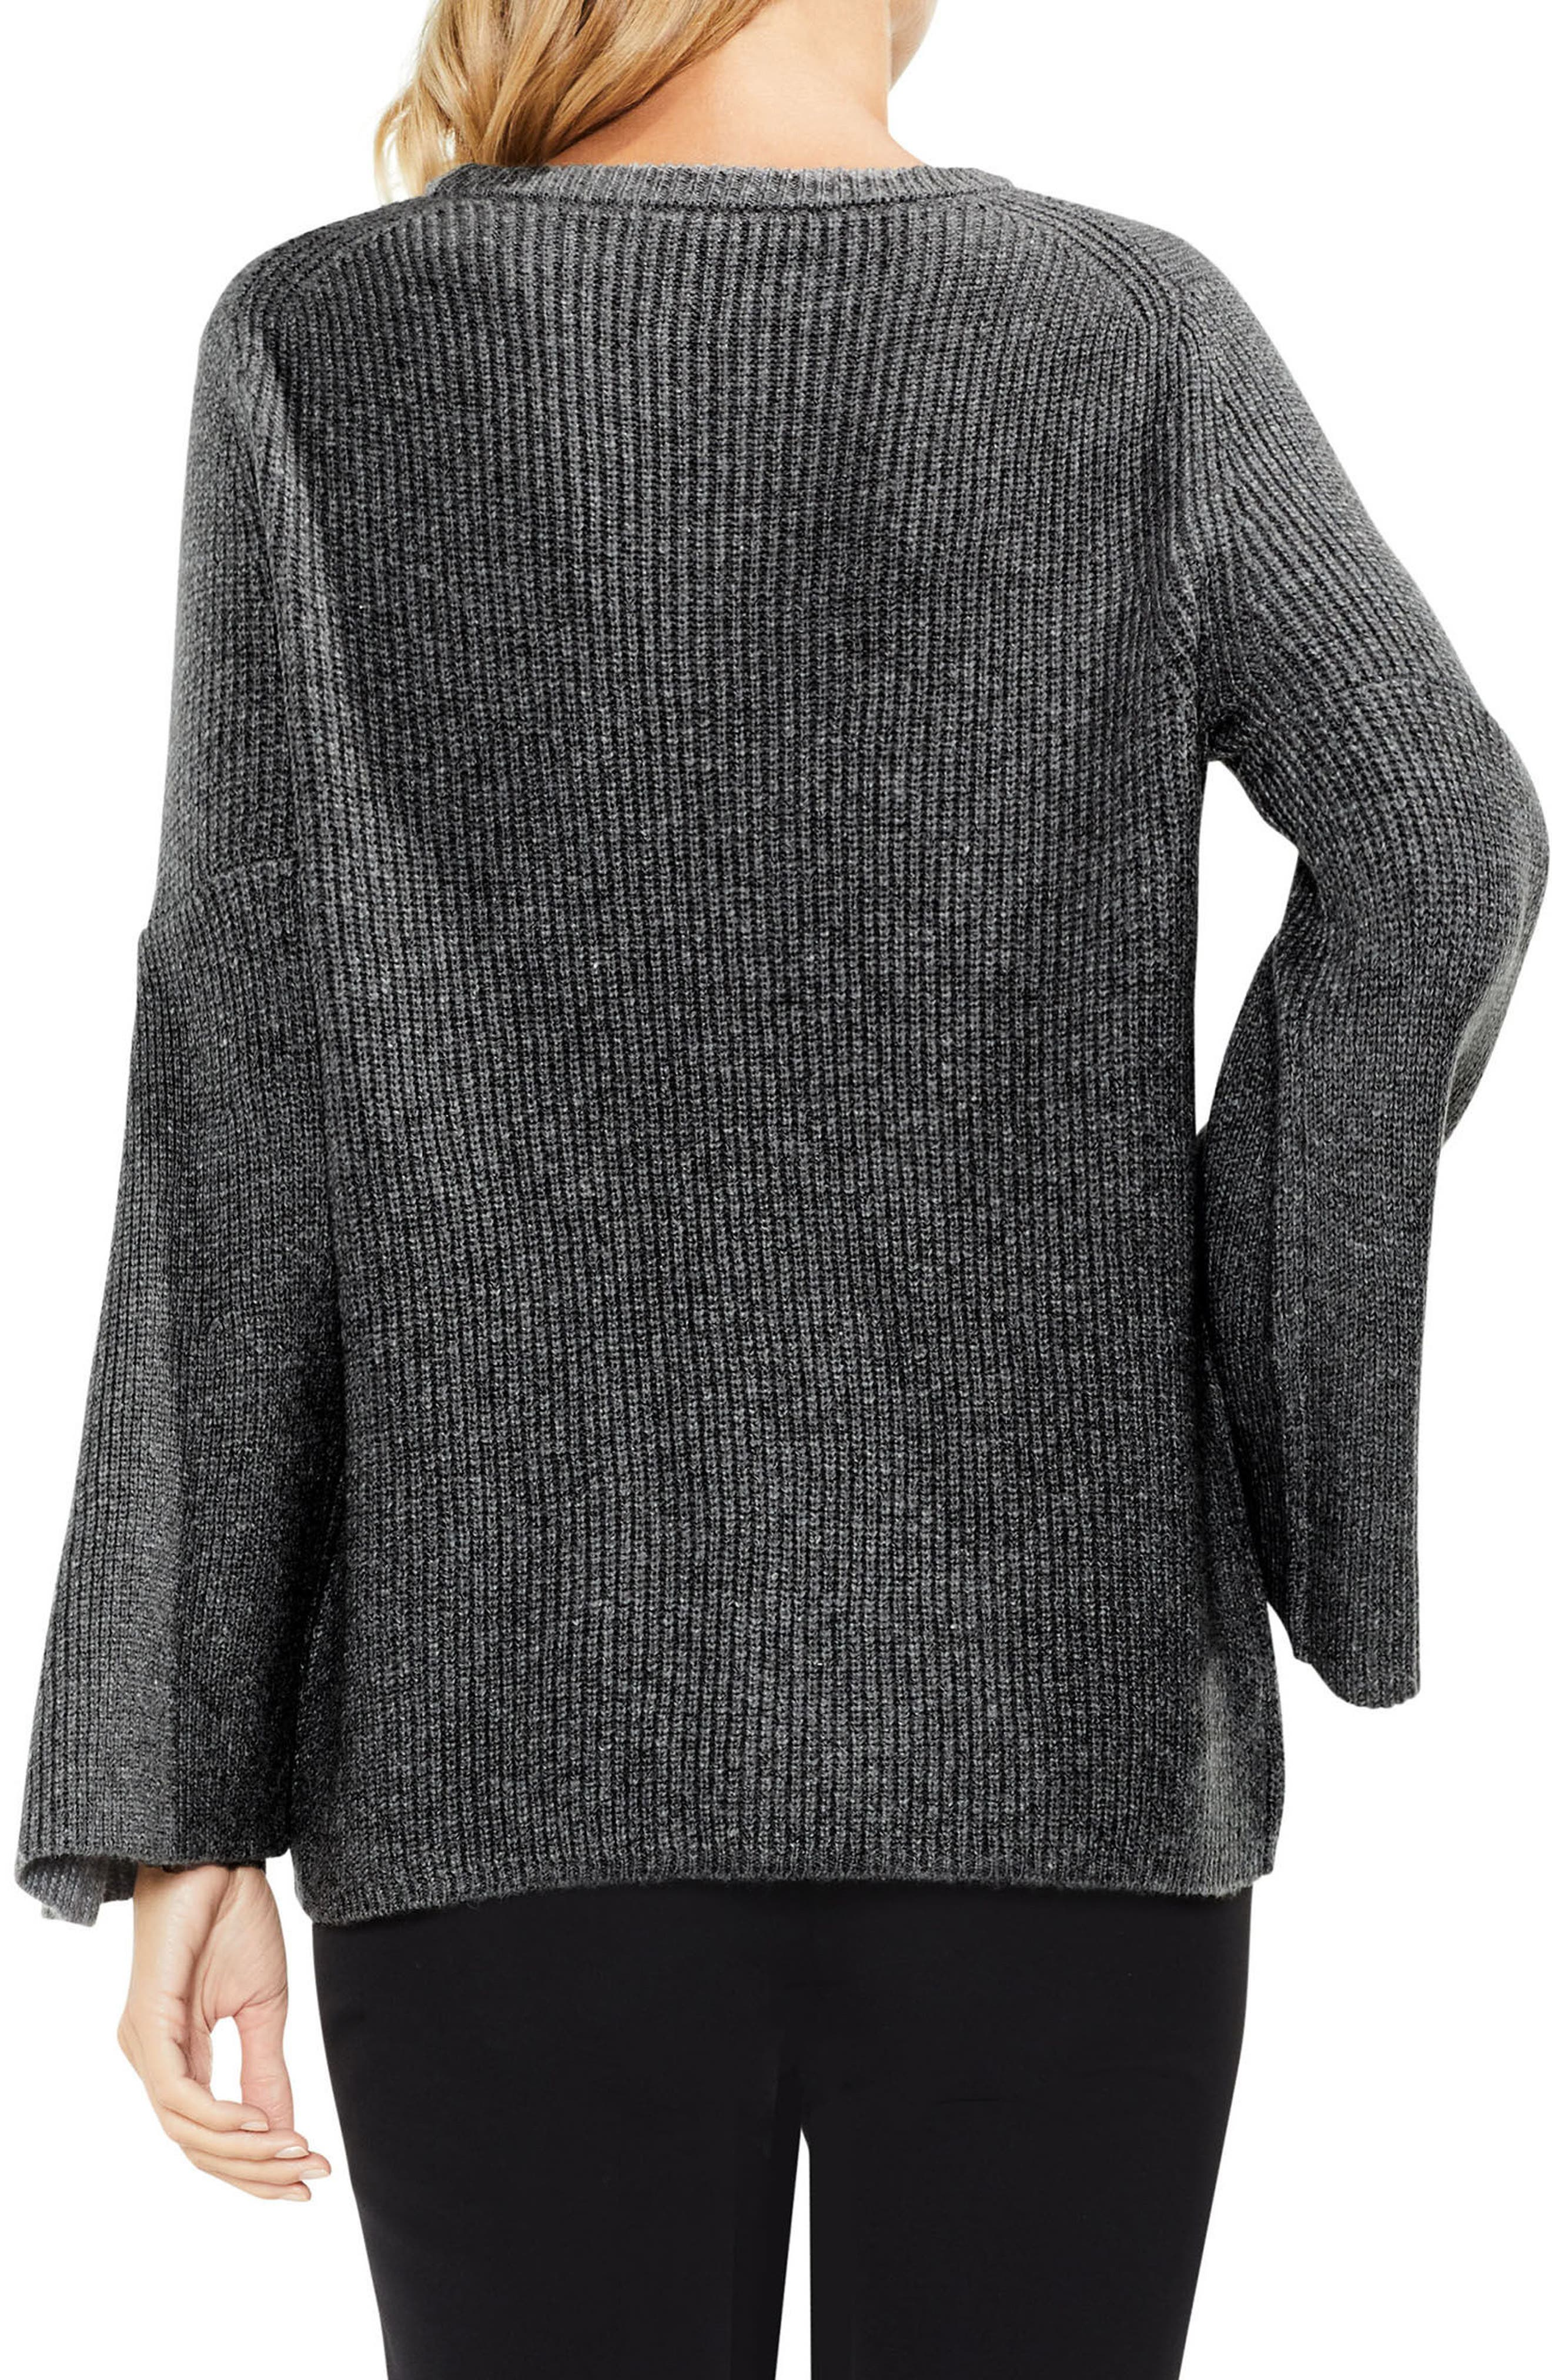 Alternate Image 2  - Vince Camuto All Over Rib Bell Sleeve Sweater (Regular & Petite)